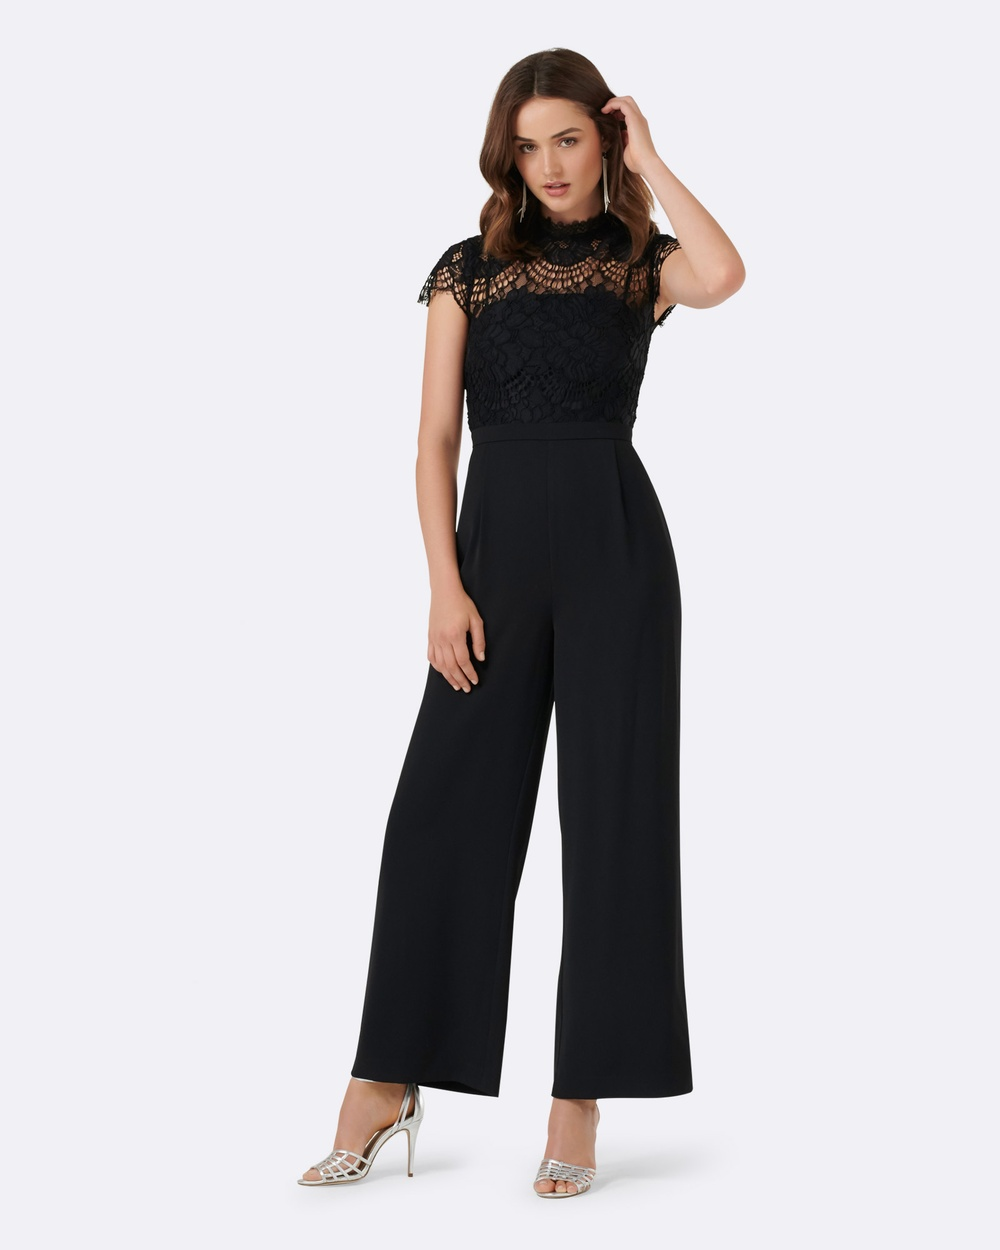 Forever New Leona Lace Wide Leg Jumpsuit Bridesmaid Dresses Black Leona Lace Wide Leg Jumpsuit